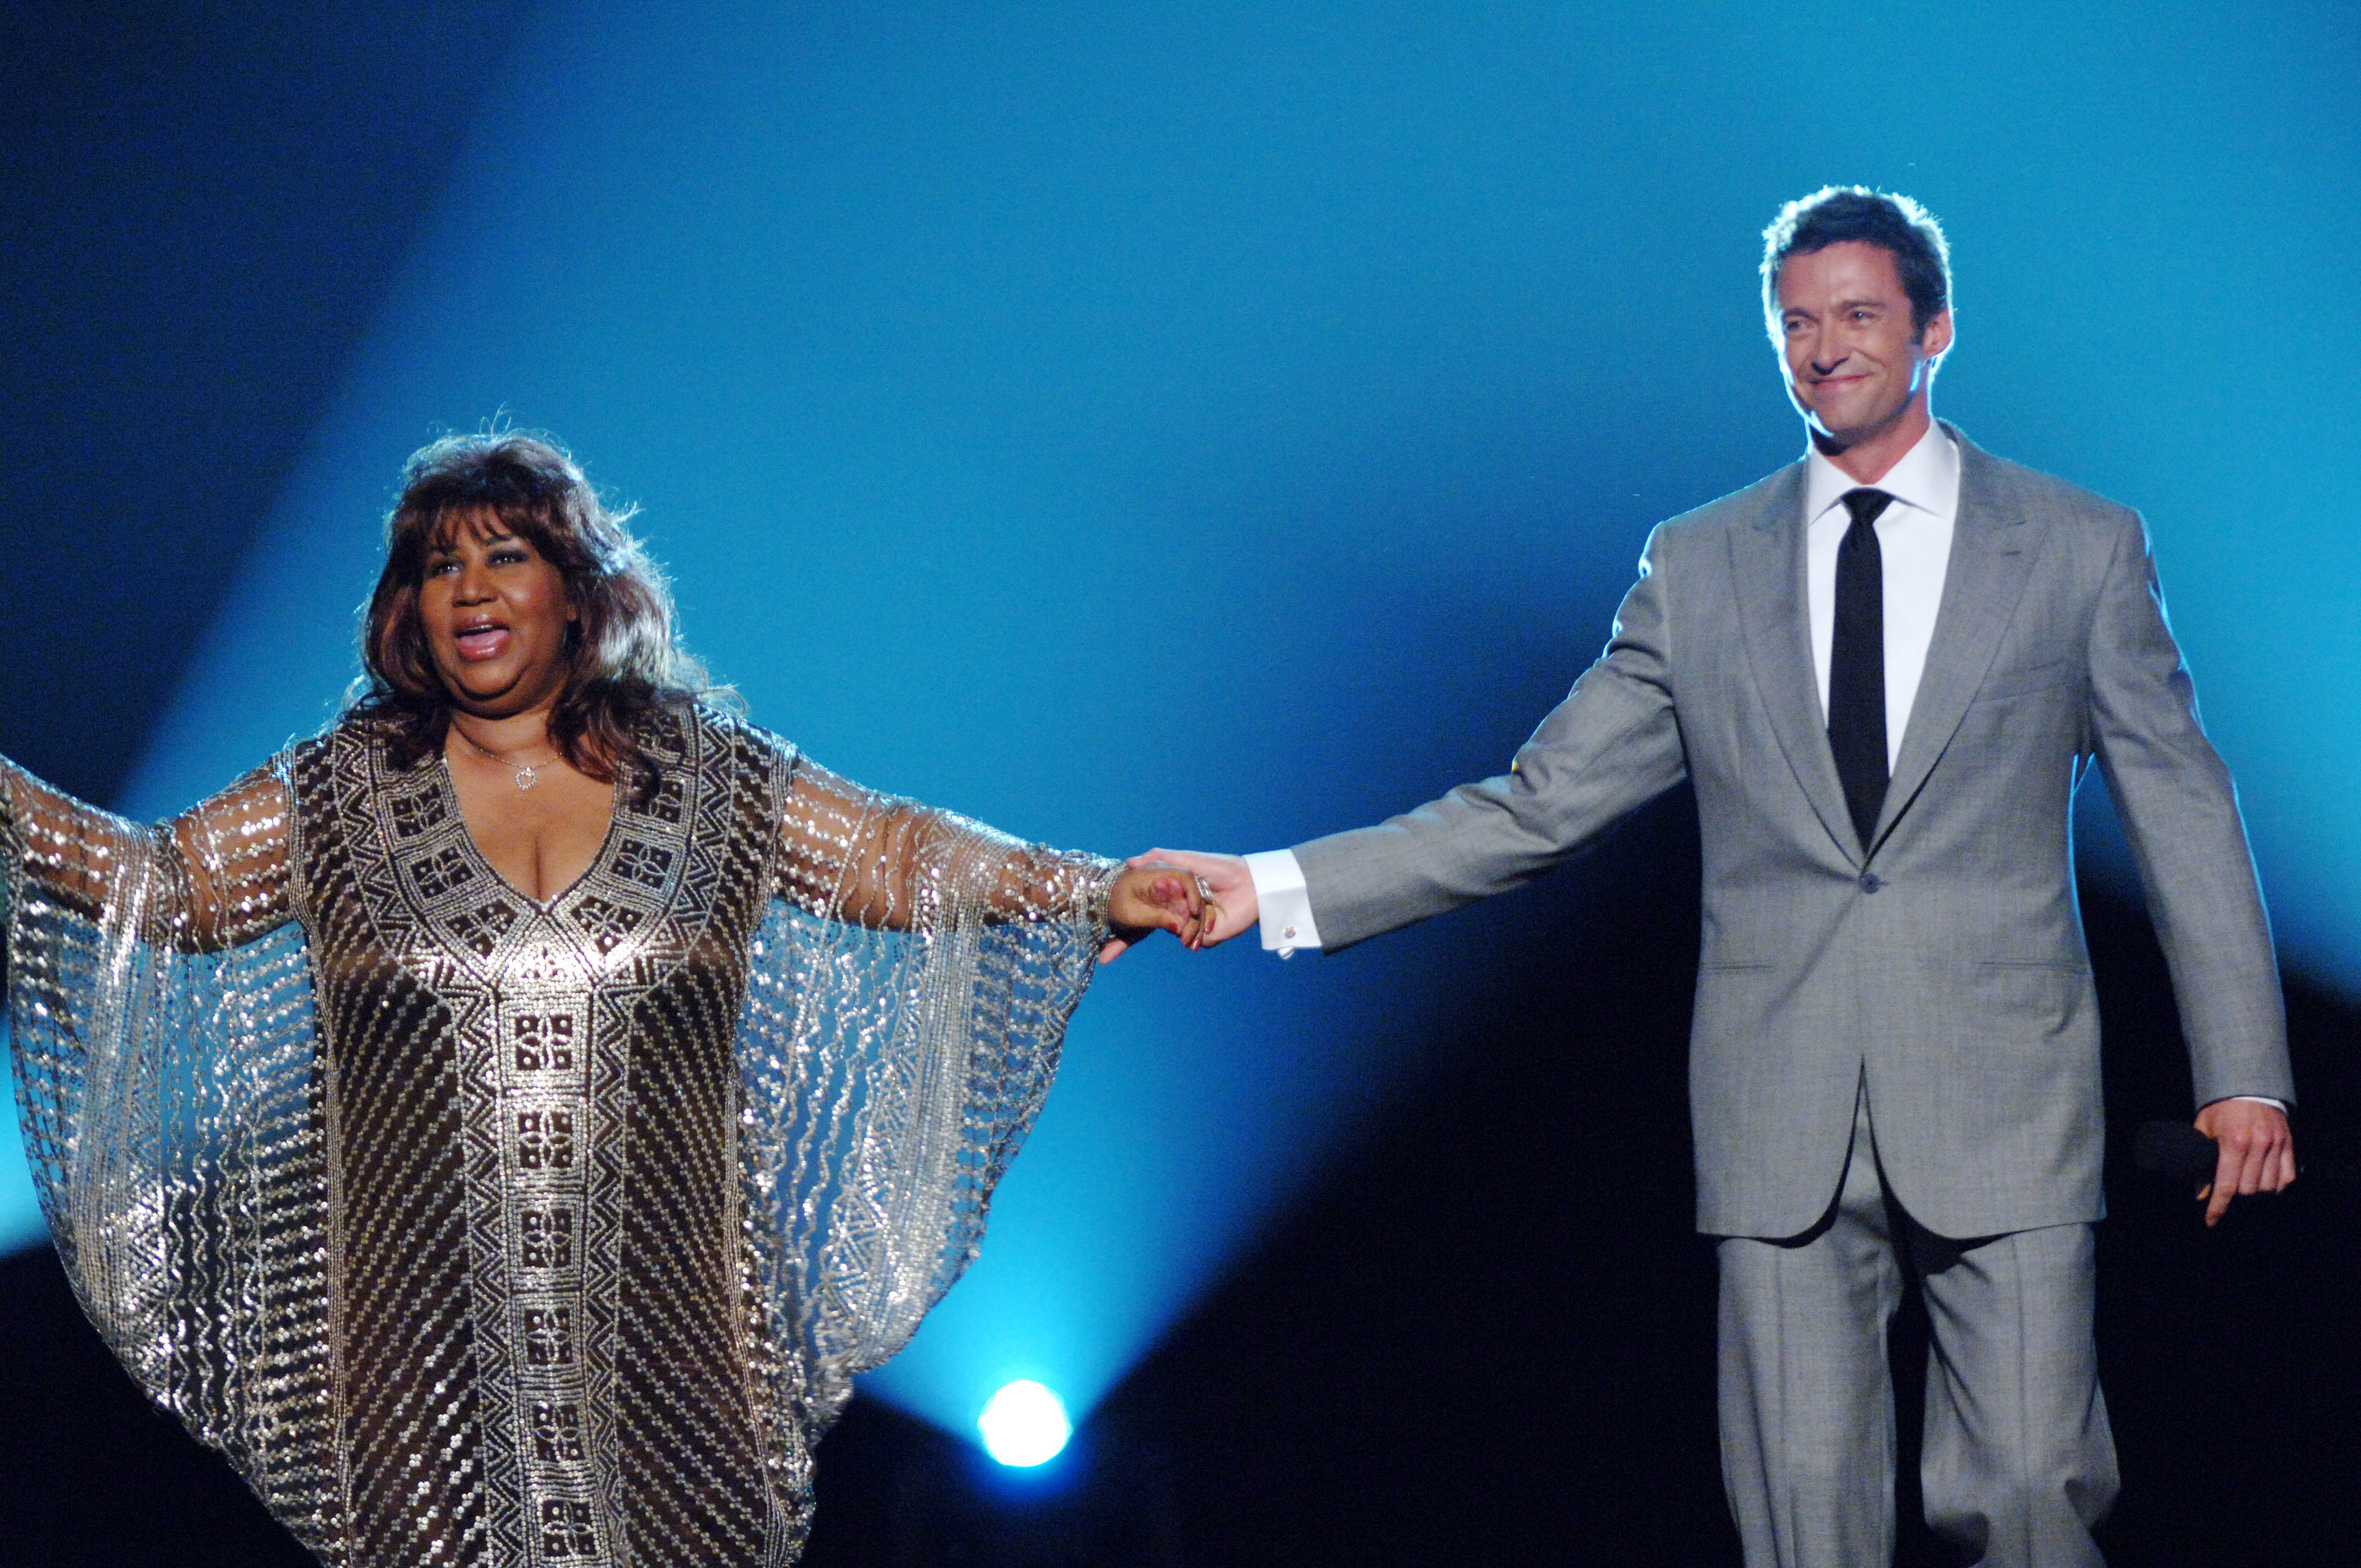 Aretha Franklin and Hugh Jackman perform during the 59th Annual Tony Awards at Radio City Music Hall in New York City on June 5, 2005.